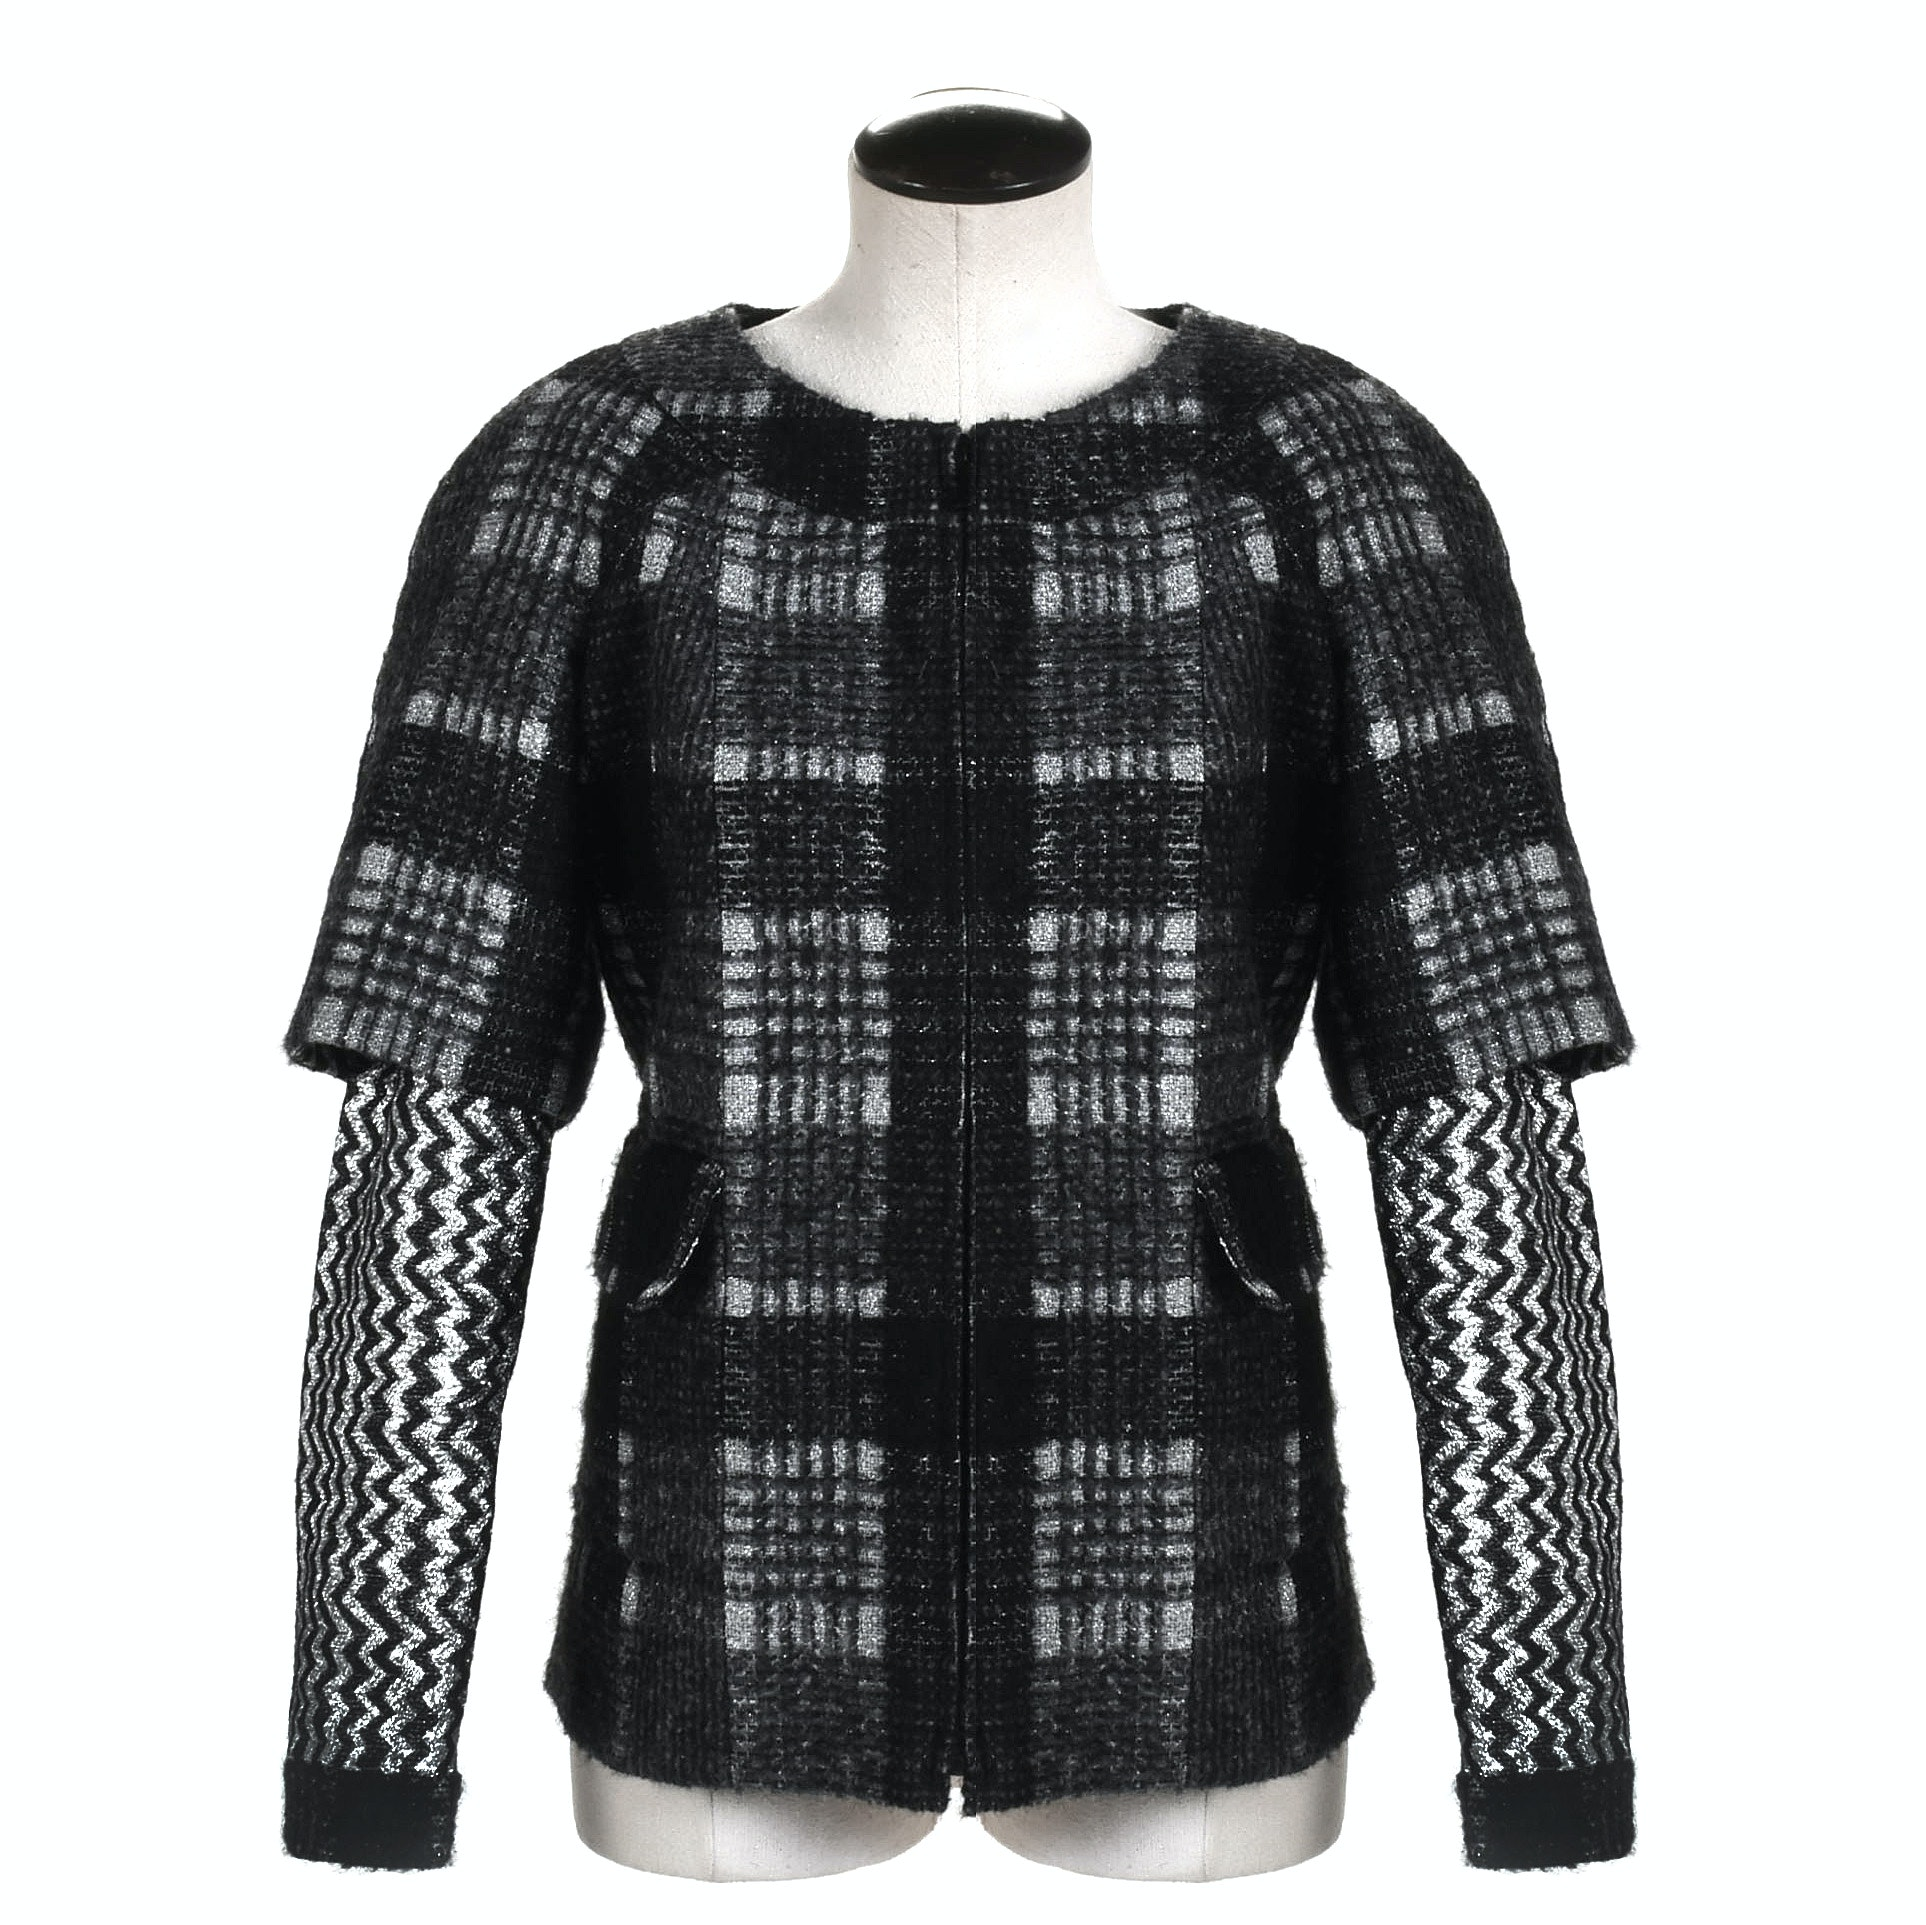 Chanel Black and Silver Metallic Tweed Jacket with Zigzag Sleeves, France